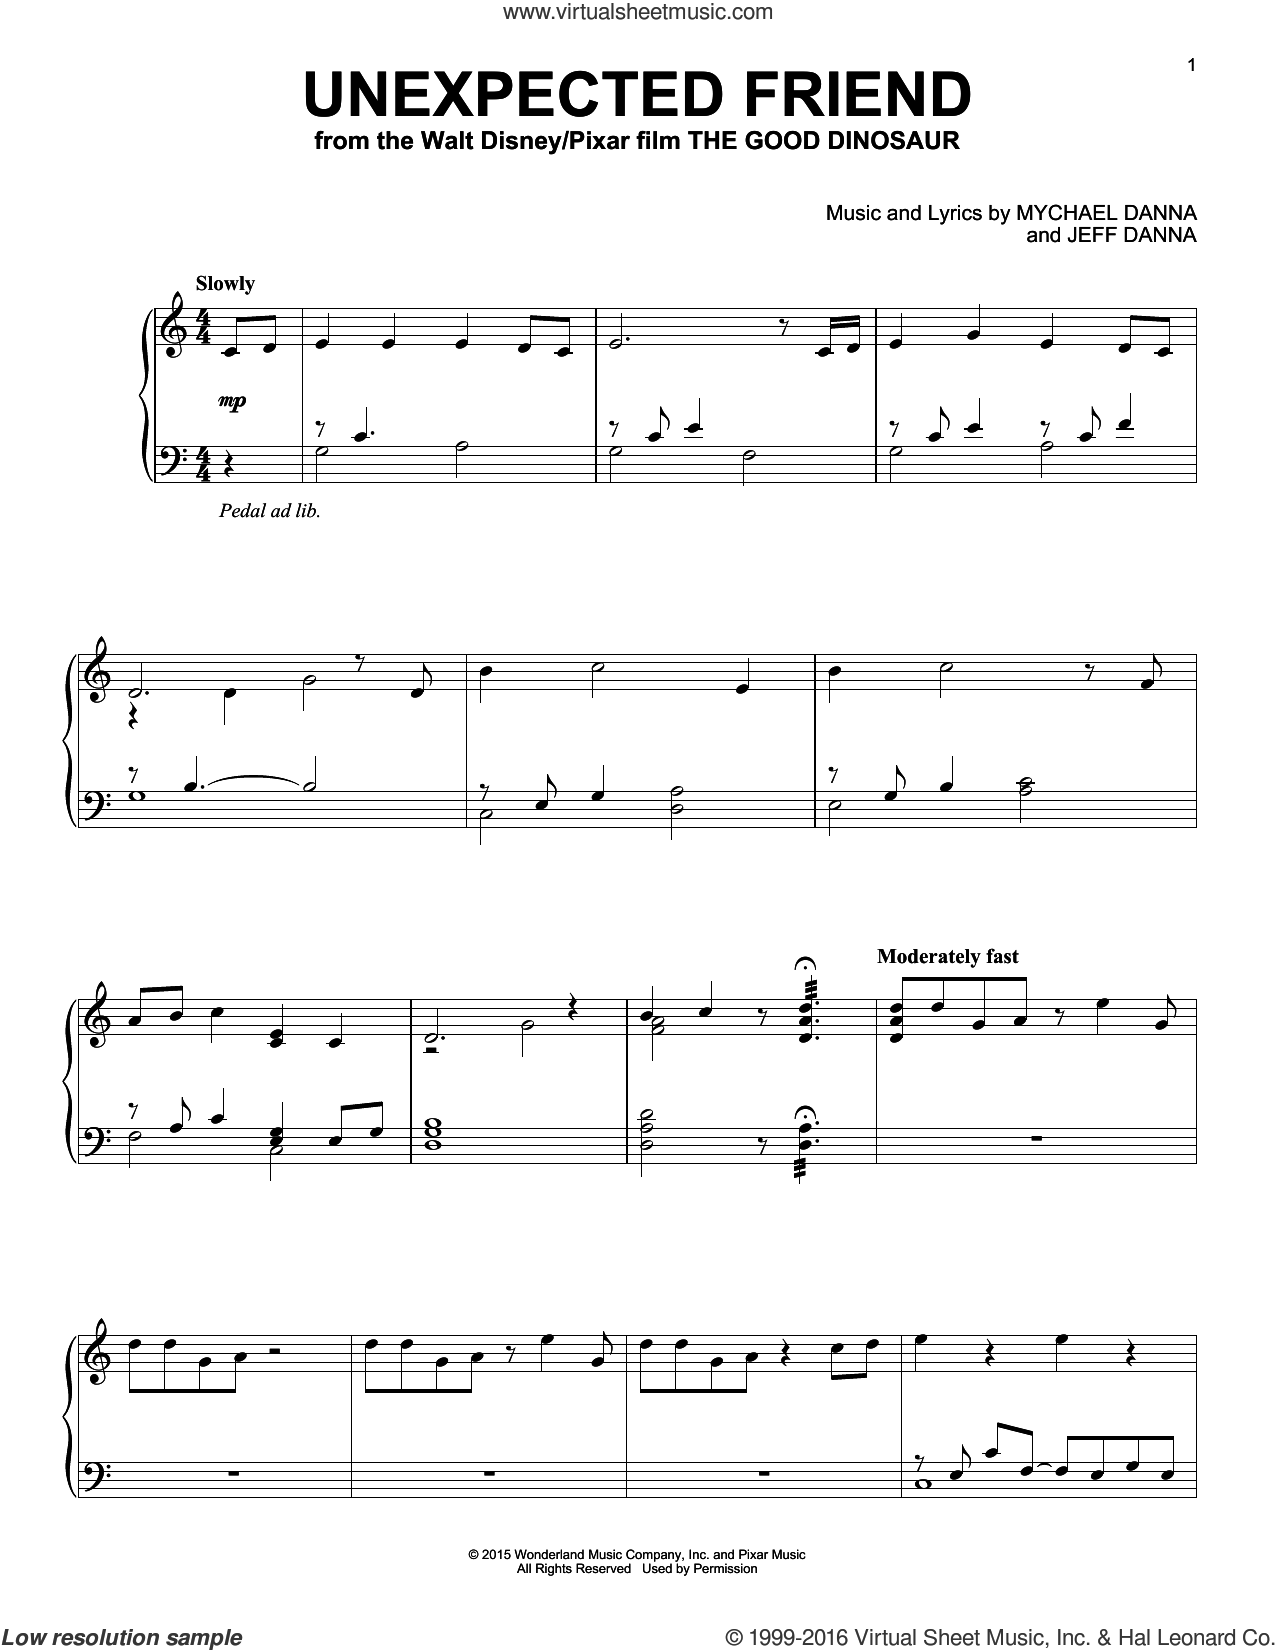 Unexpected Friend sheet music for piano solo by Mychael Danna